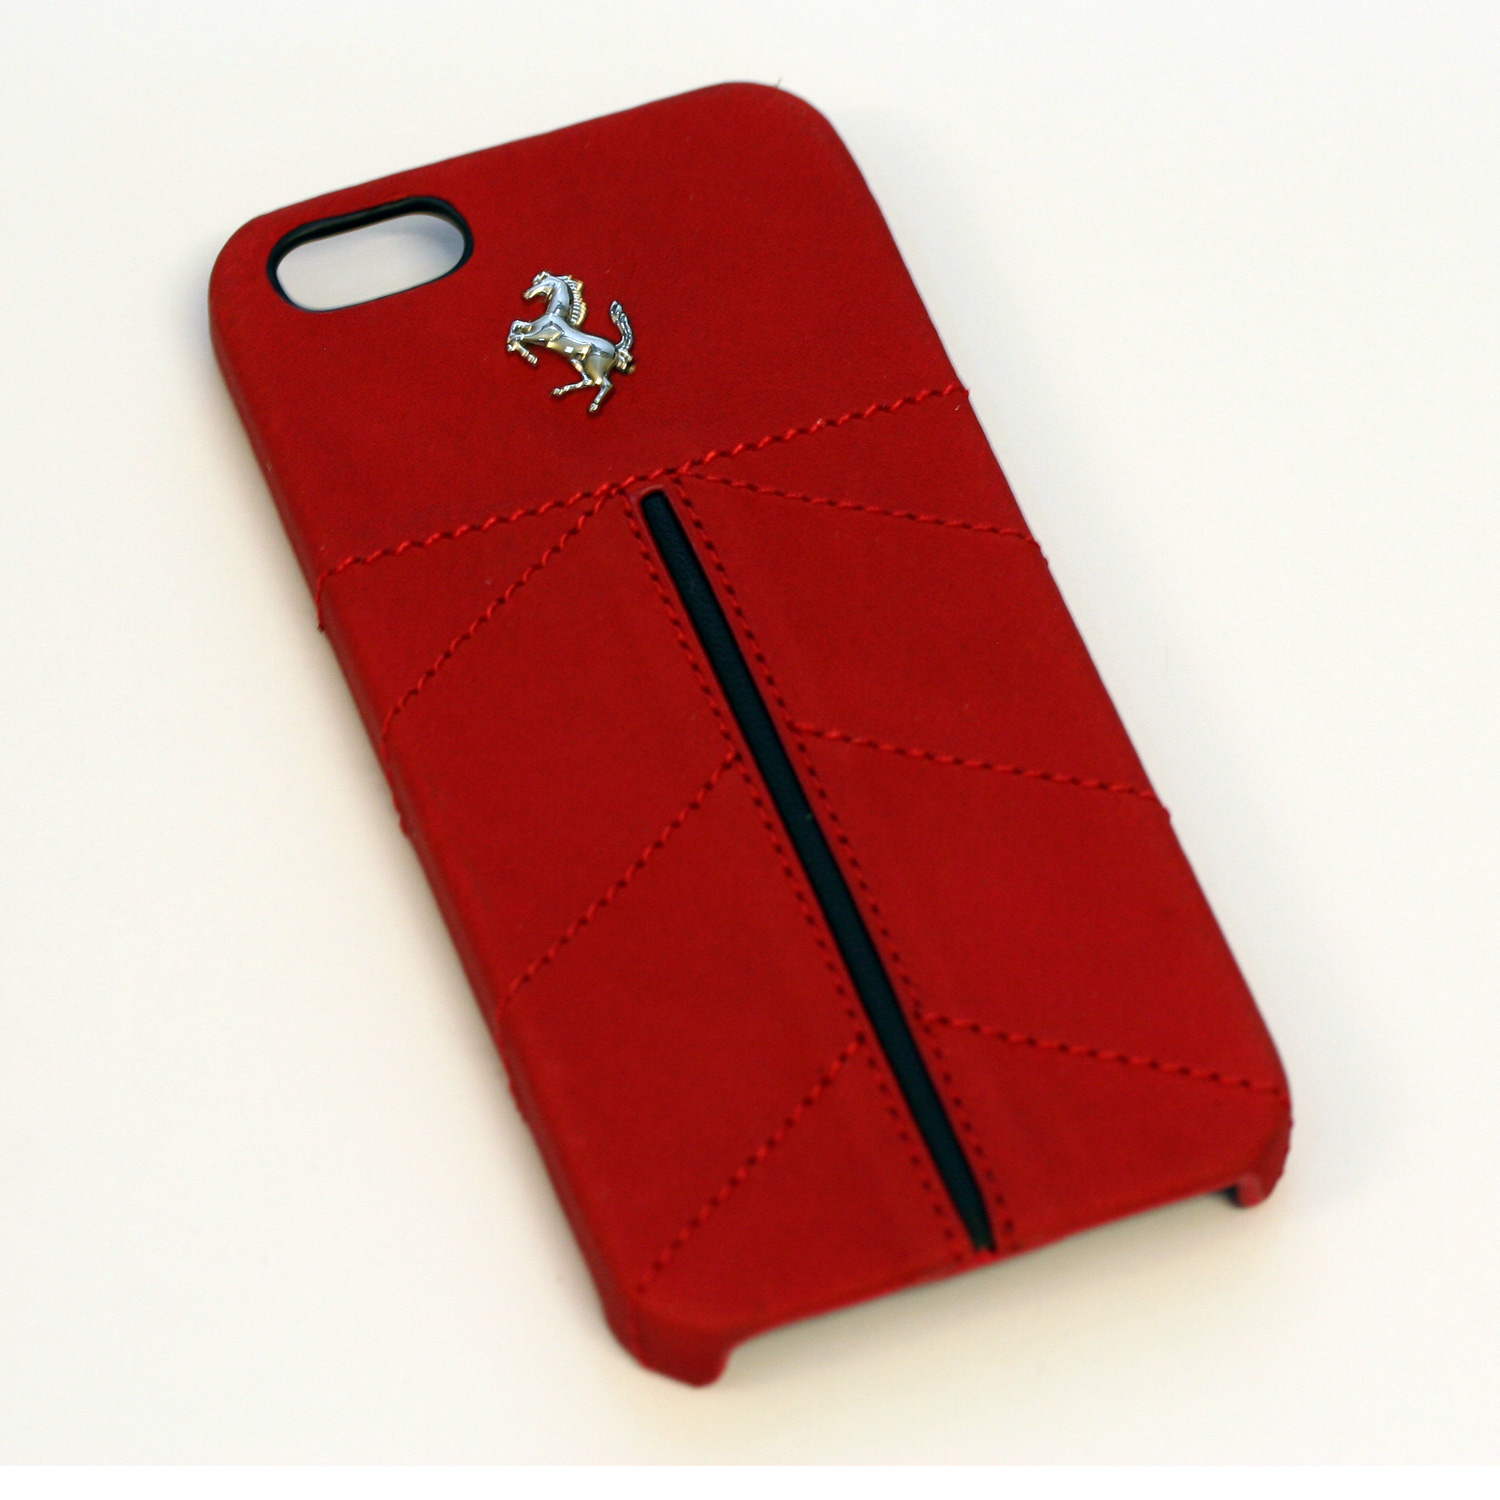 Ferrari IPhone 5 5S Red Leather Stitching Case CG Mobile New FECFIP5R